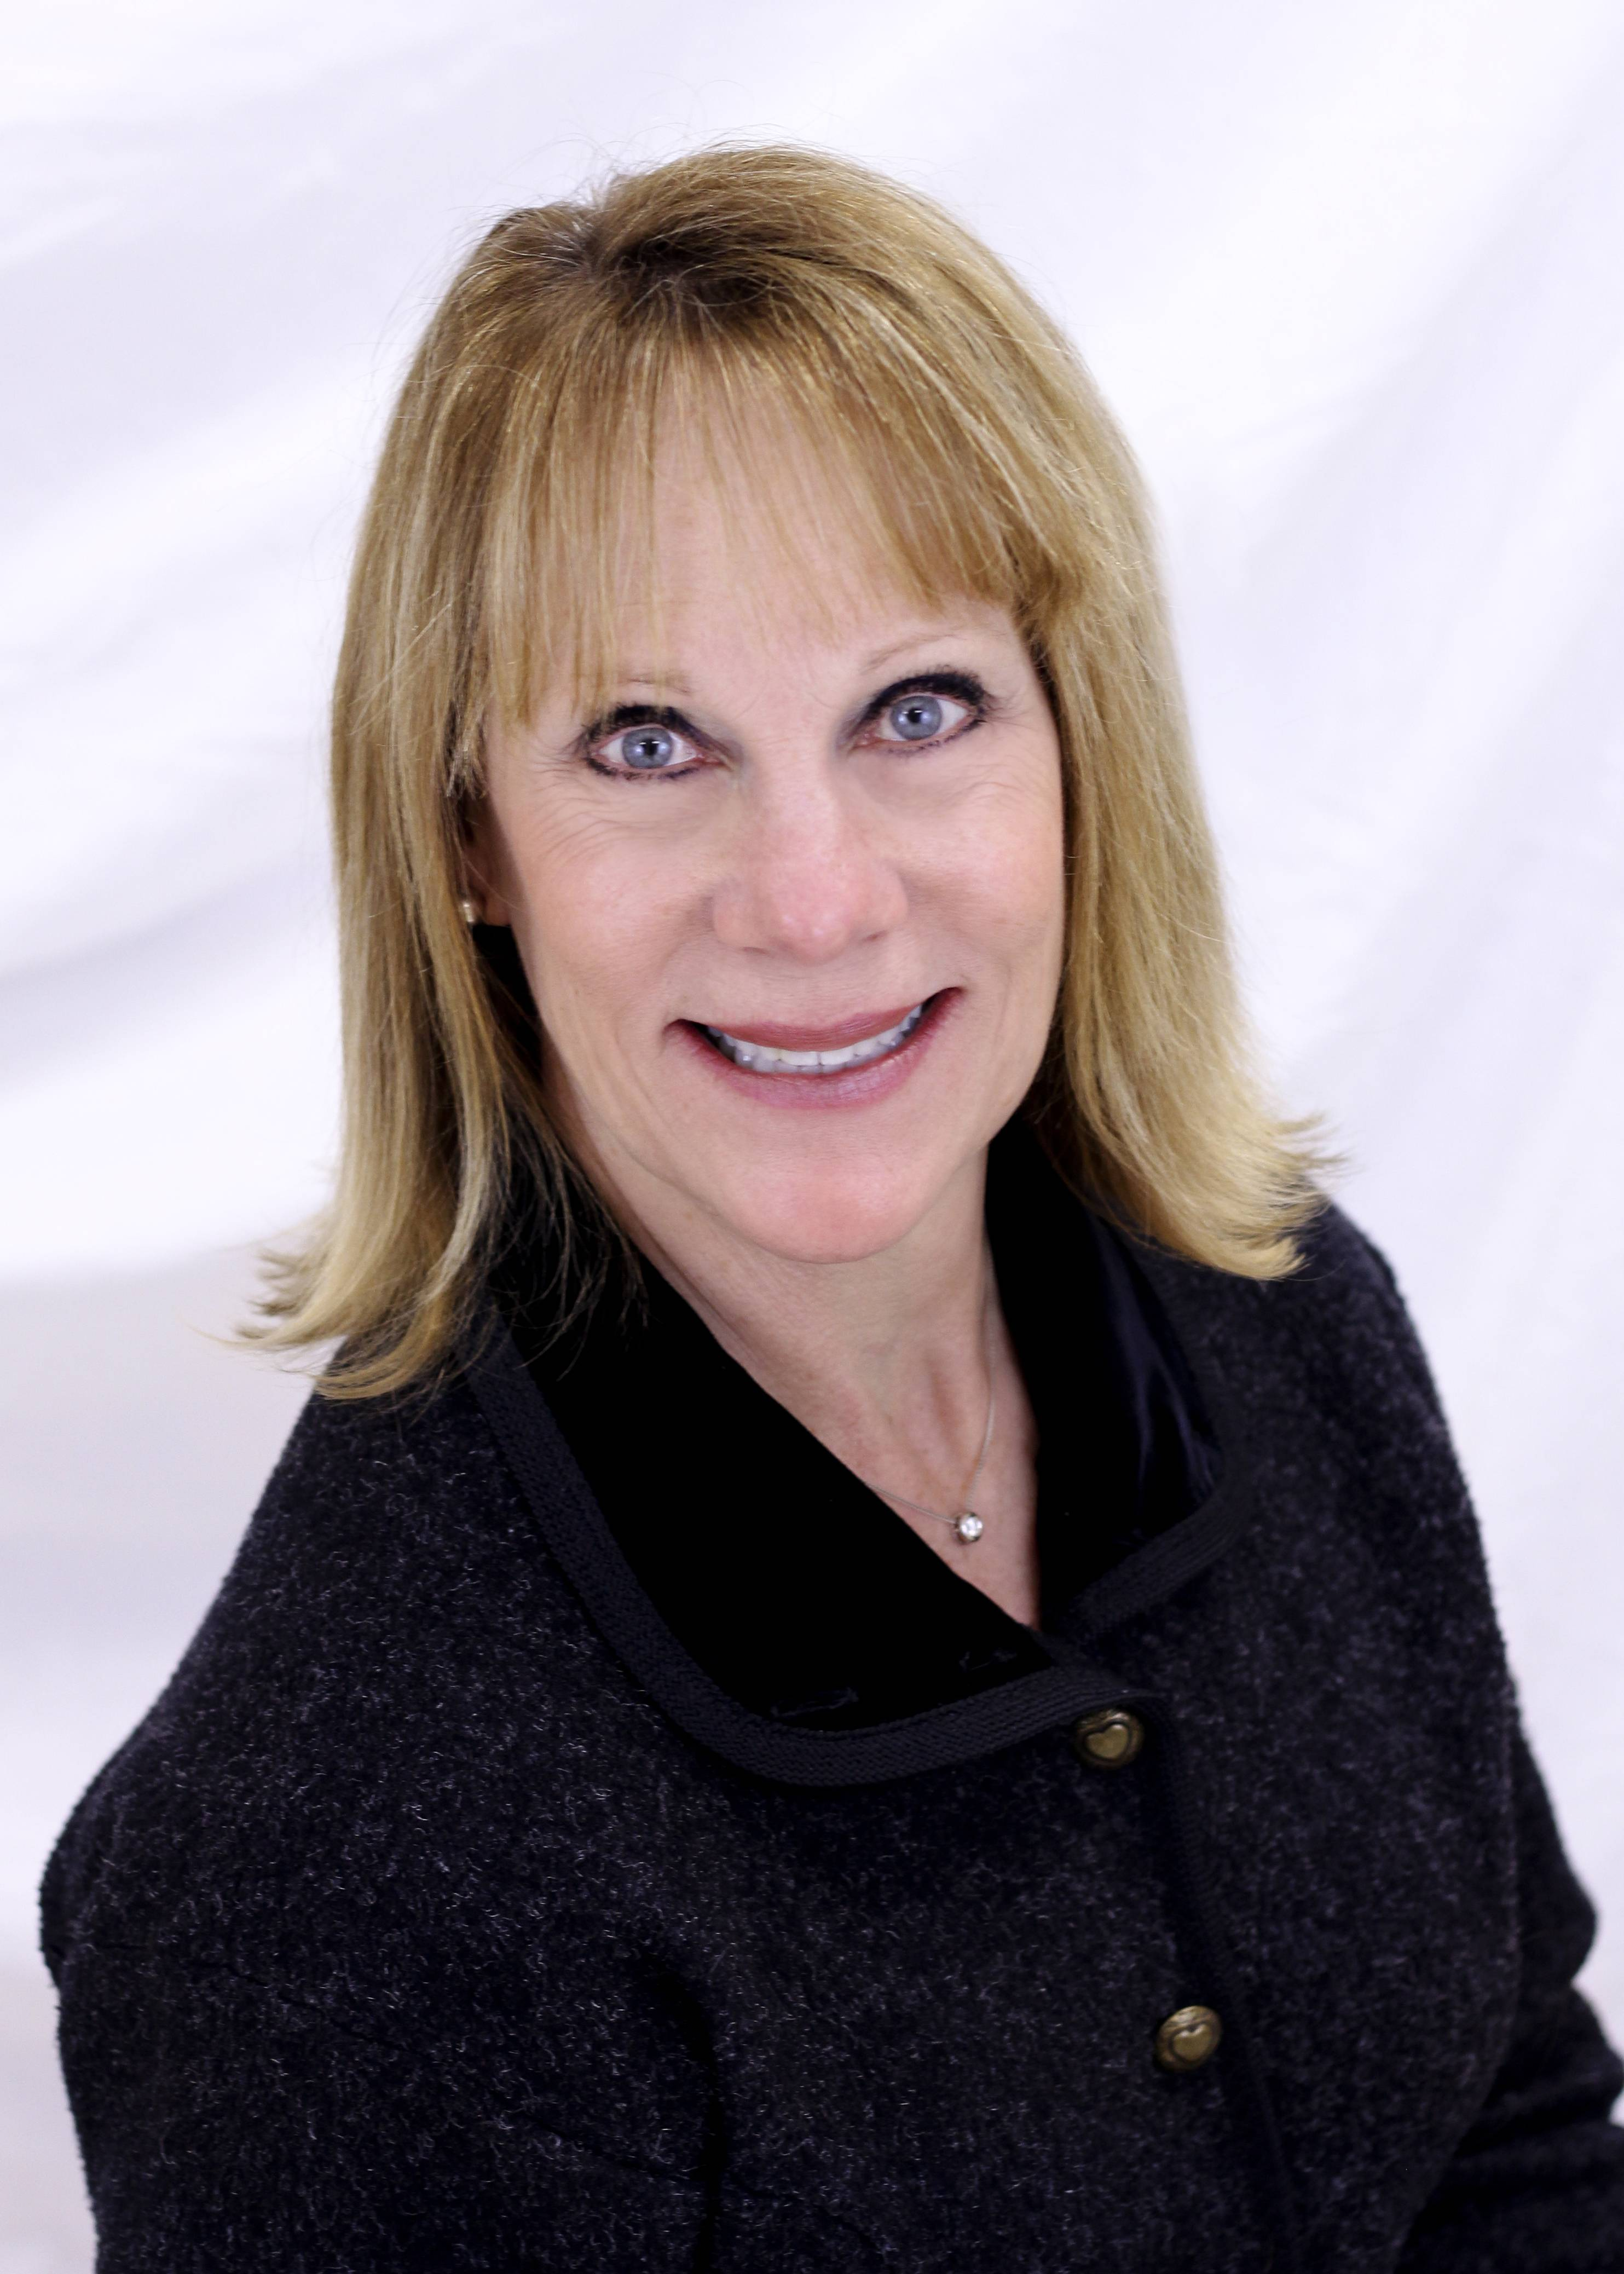 Gayle Vandenbergh, running for Hoffman Estates Village Board (4-year Terms)